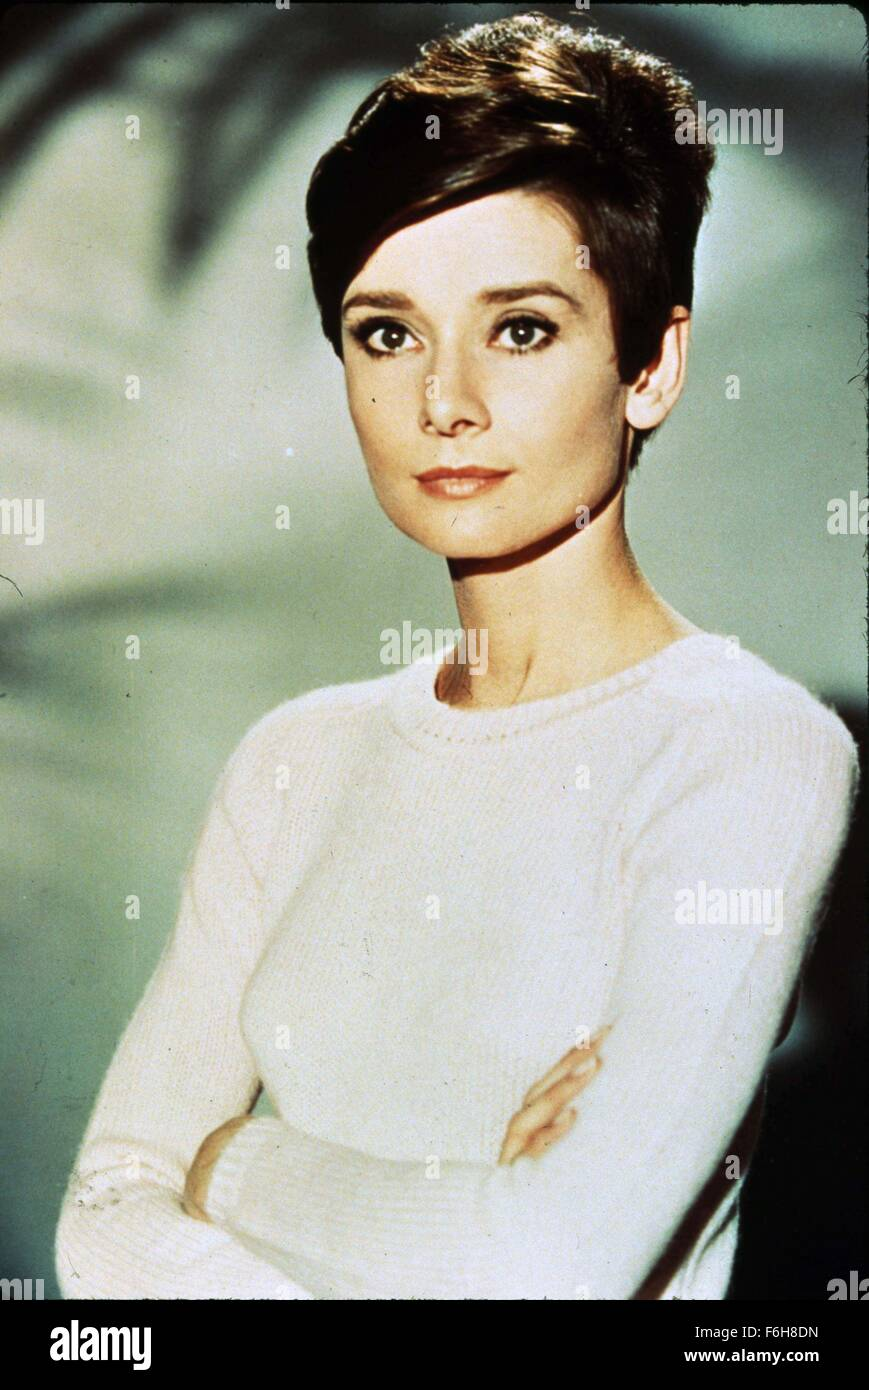 1967, Film Title: WAIT UNTIL DARK, Director: TERENCE YOUNG, Studio: WARNER, Pictured: AUDREY HEPBURN, TERENCE YOUNG, - Stock Image